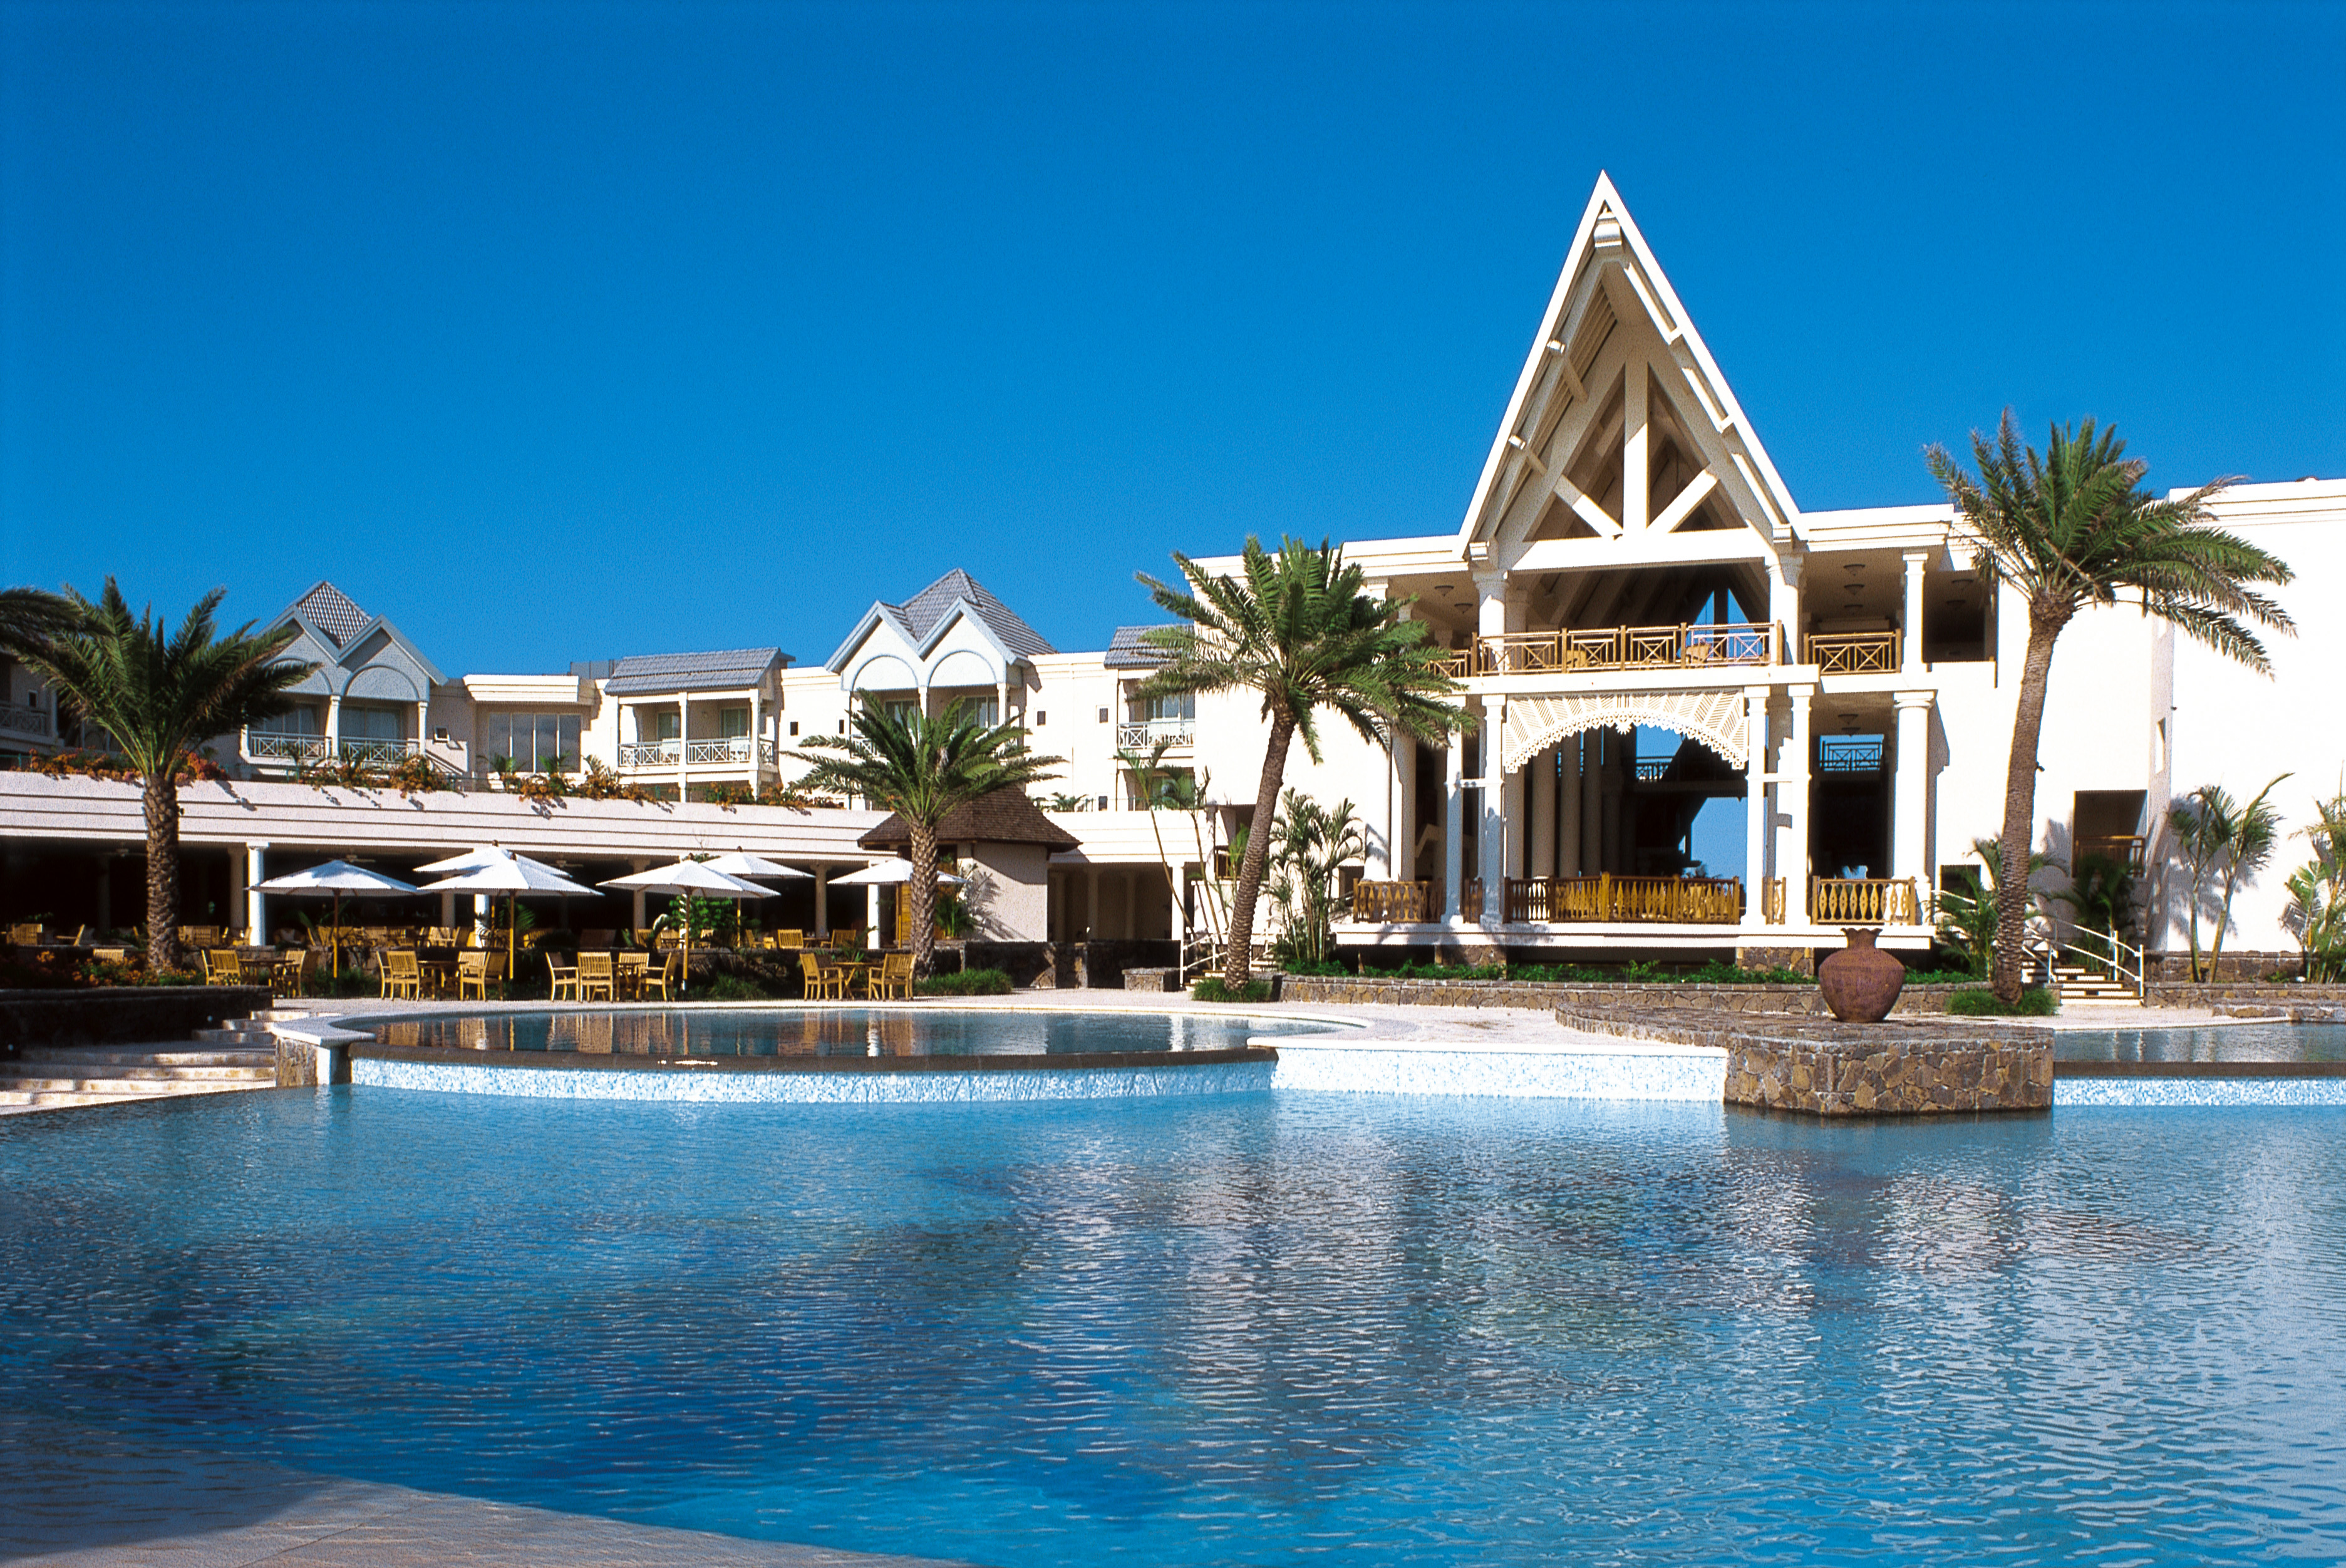 See how karen got on in mauritius when she stayed at the Luxury holiday cottages uk swimming pool